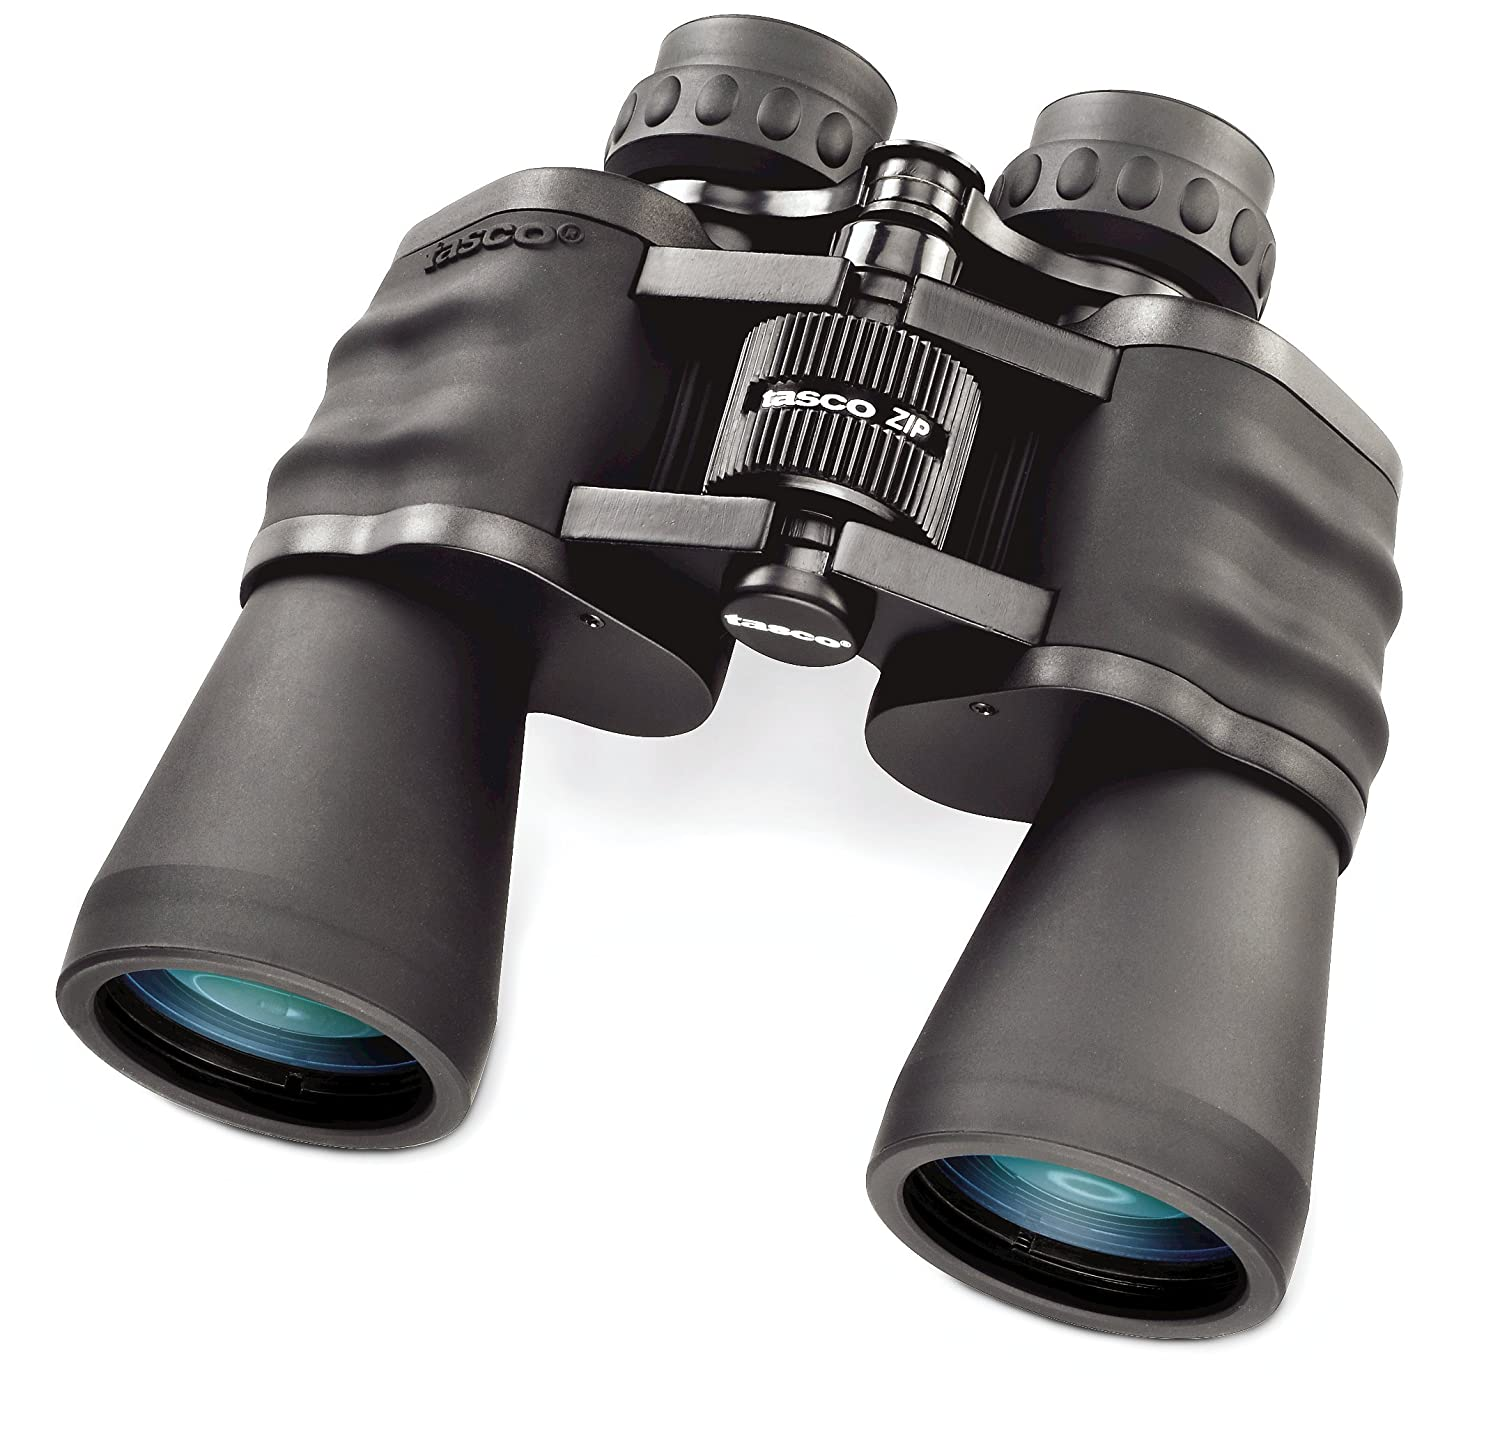 Tasco Essentials 10x 50mm Porro Prism, Zip Focus Binocular 2023BRZ